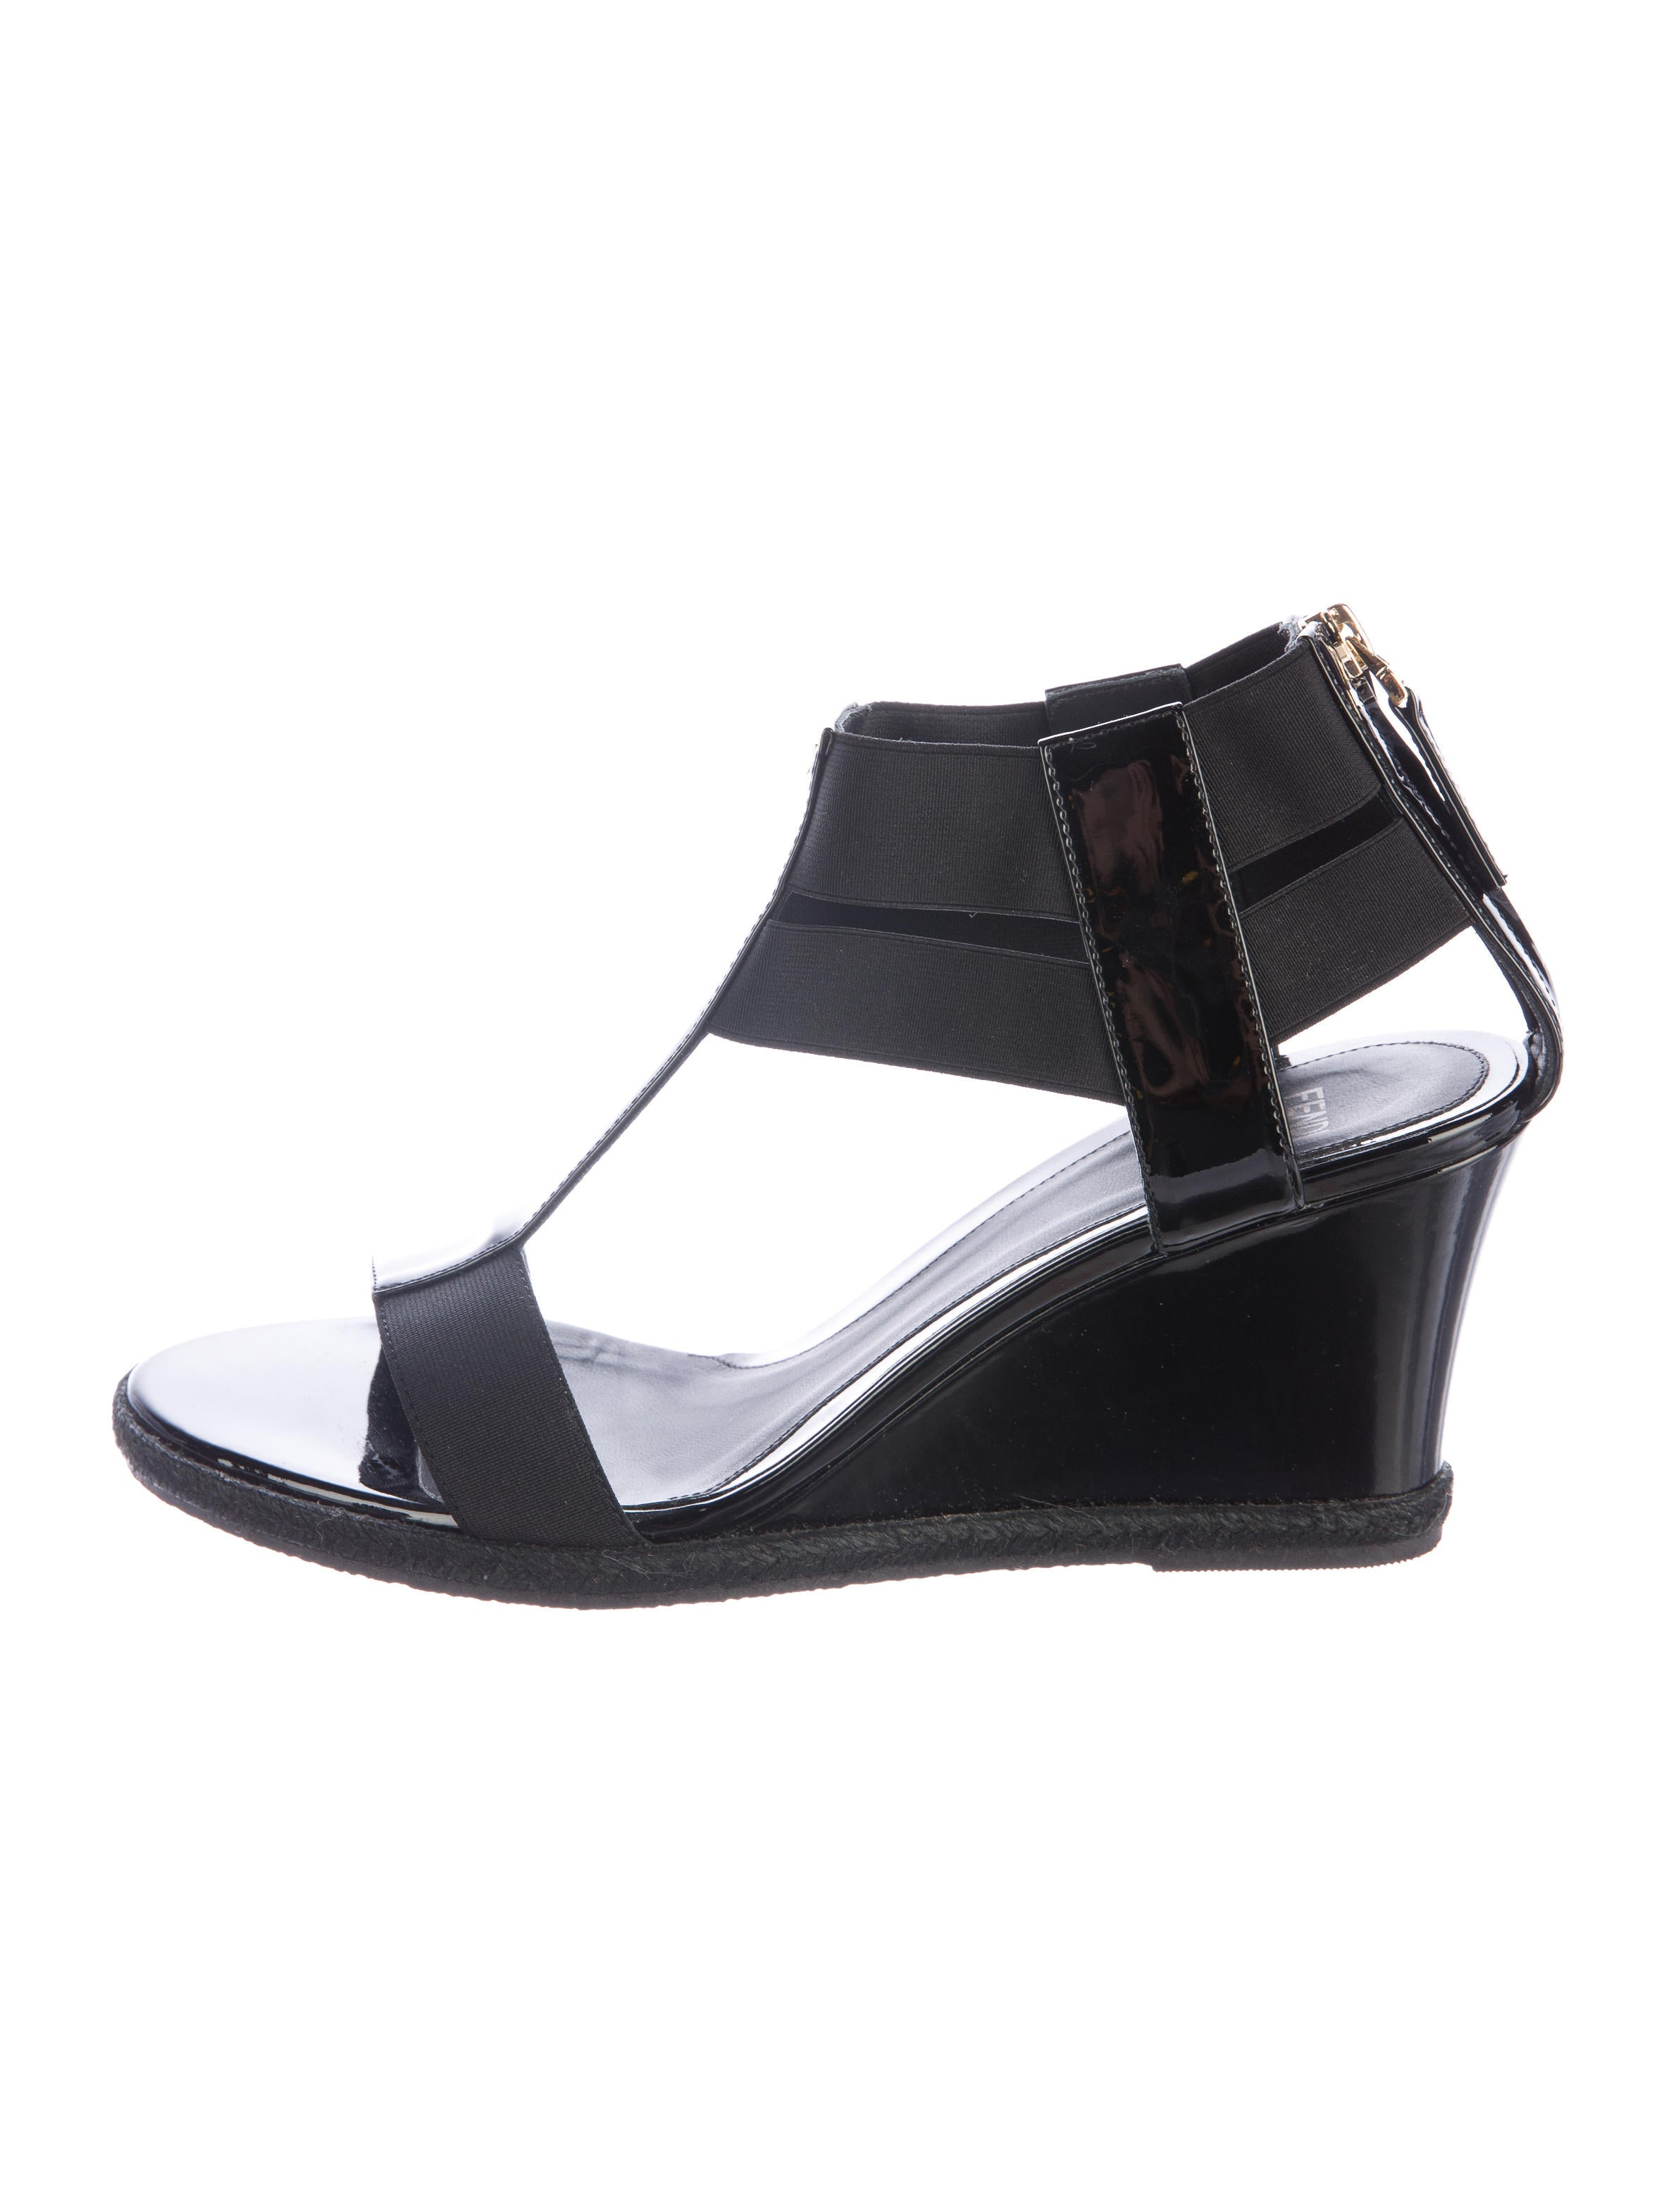 fendi patent leather wedge sandals shoes fen58990